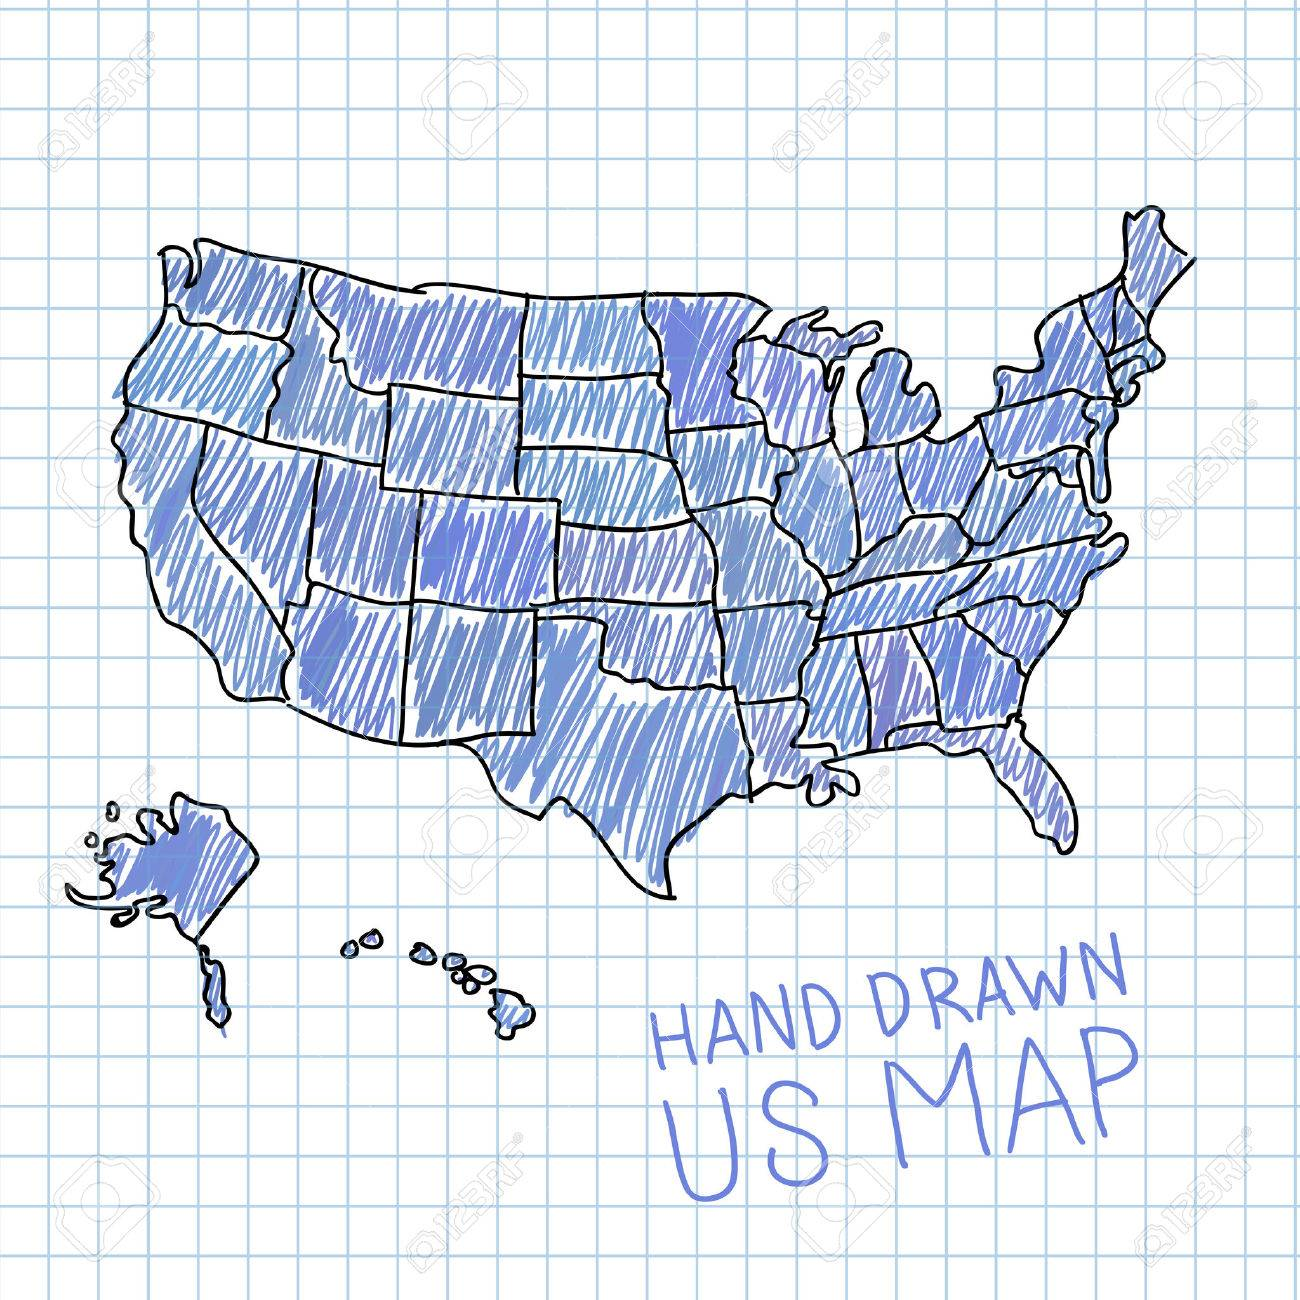 Hand Drawn US Map Vector Illustration Royalty Free Cliparts - Hand drawn us map vector